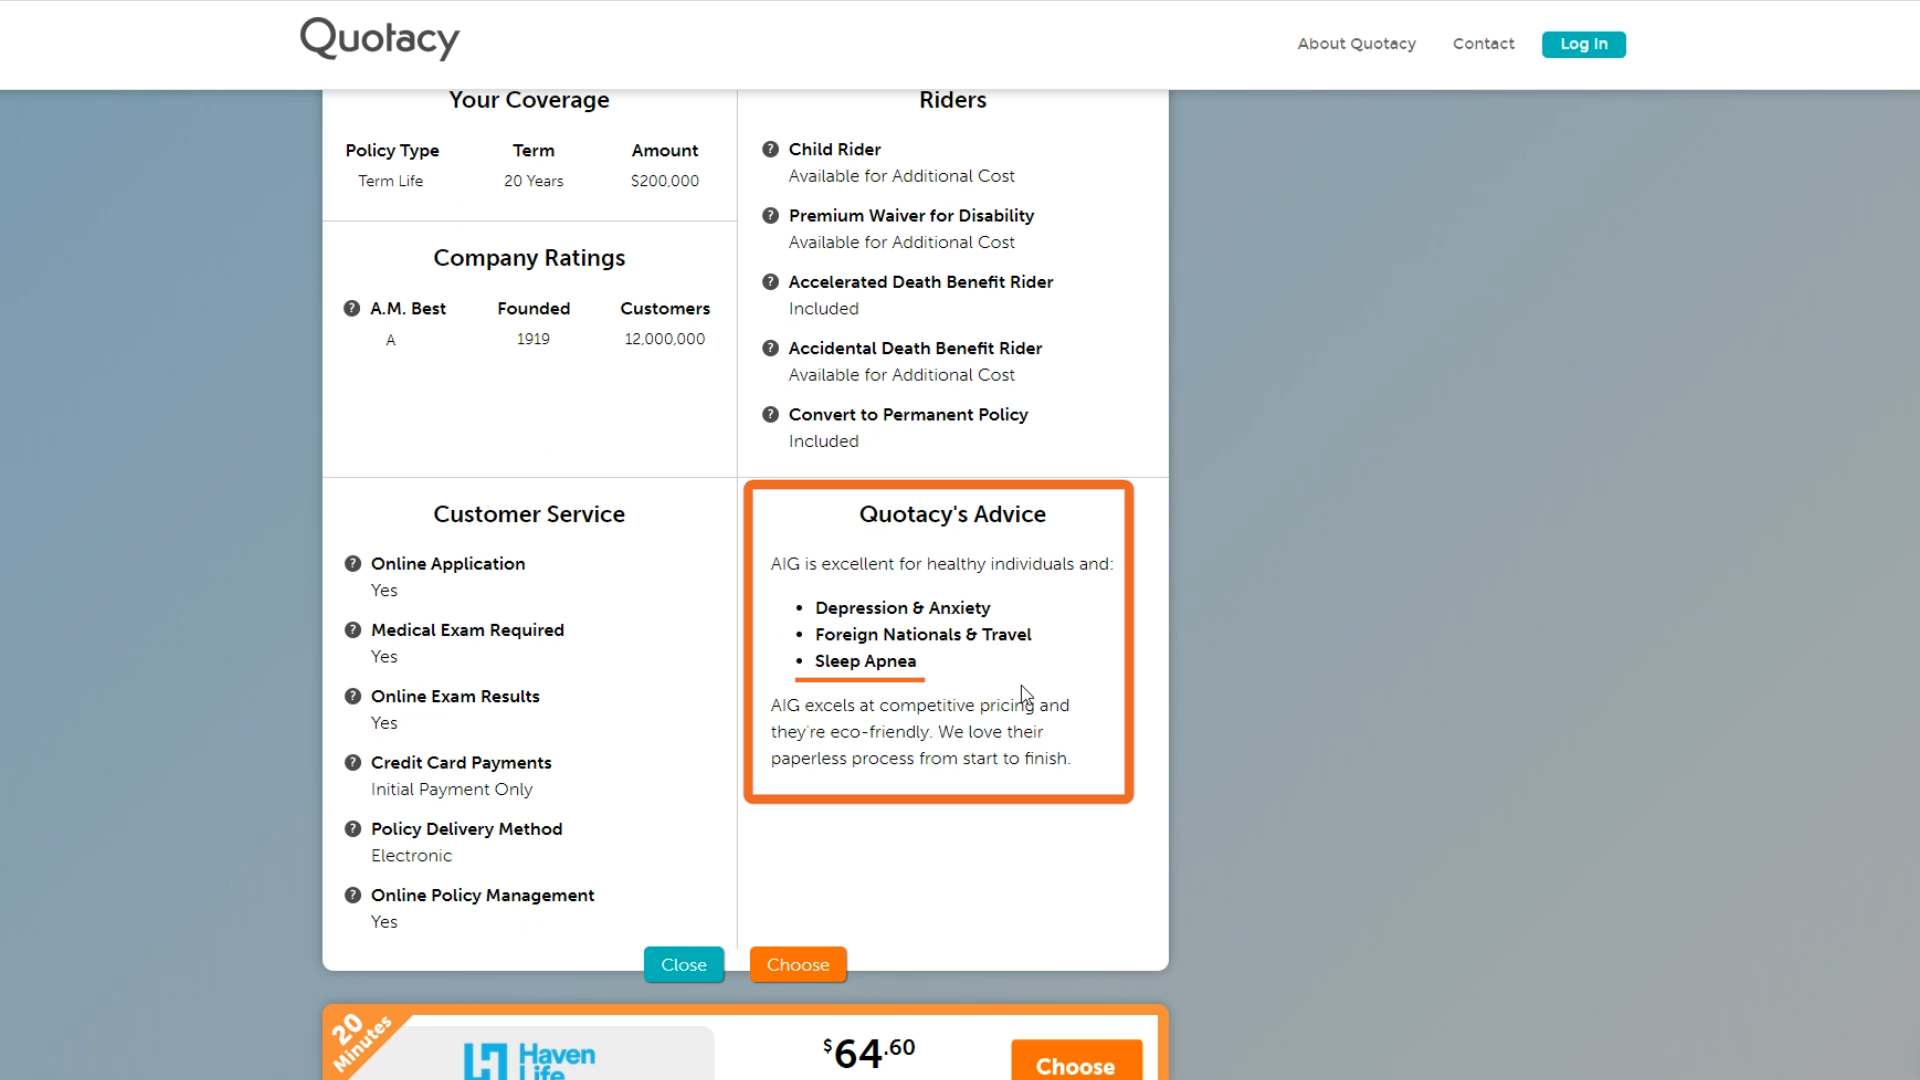 screenshot of Quotacy's life insurance quoting tool showing advice